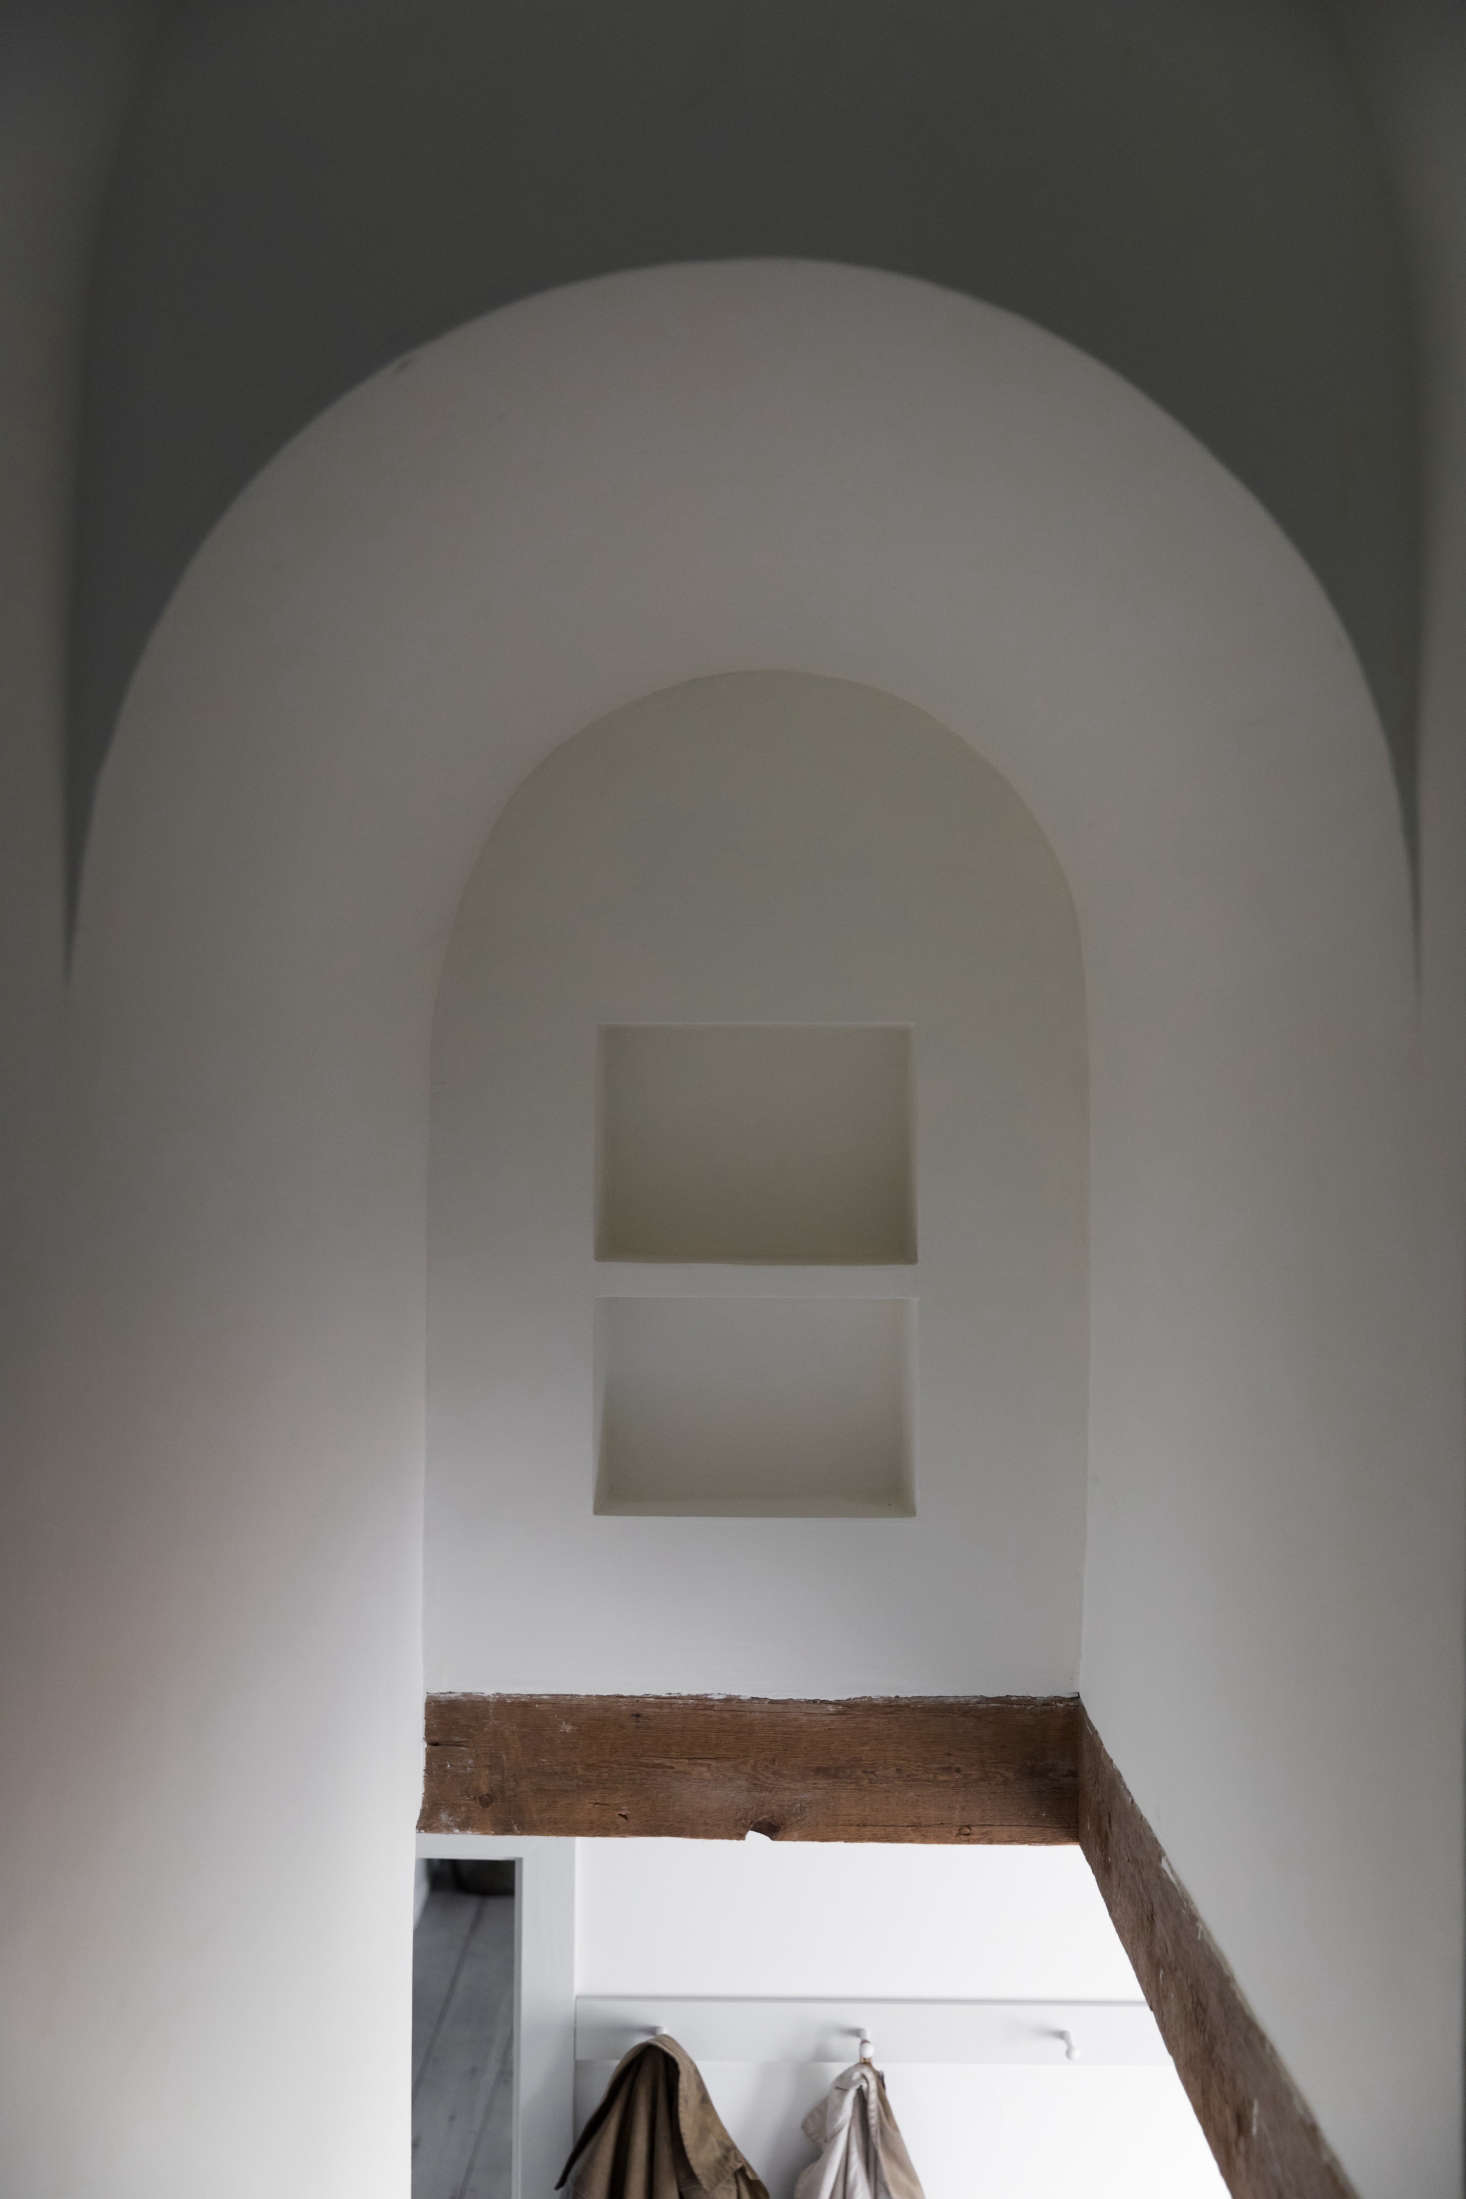 Plaster niches are a surprising detail in another stairwell.